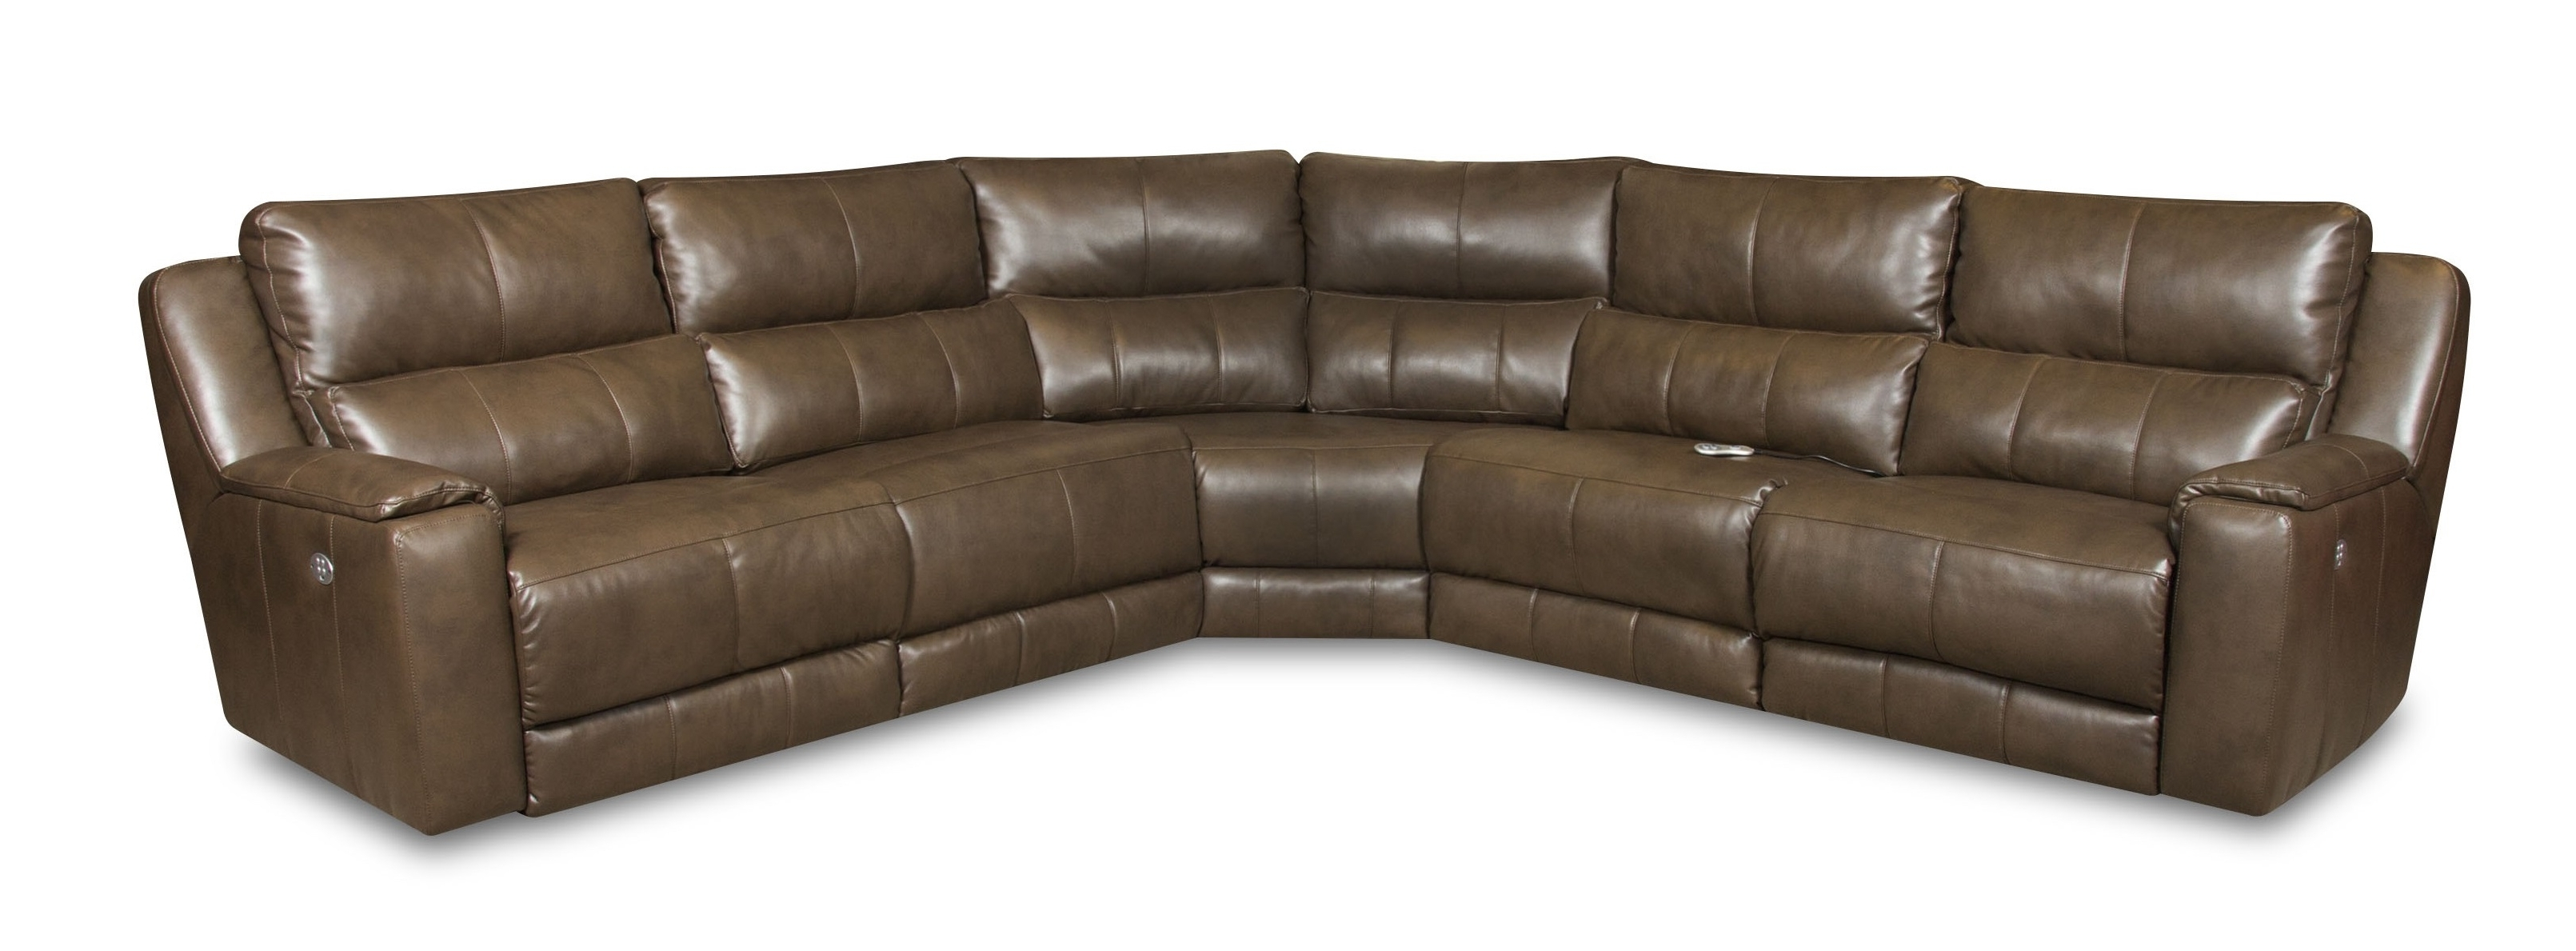 Kansas City Mo Sectional Sofas For Popular Dazzle – Reclining Sectional – (View 20 of 20)